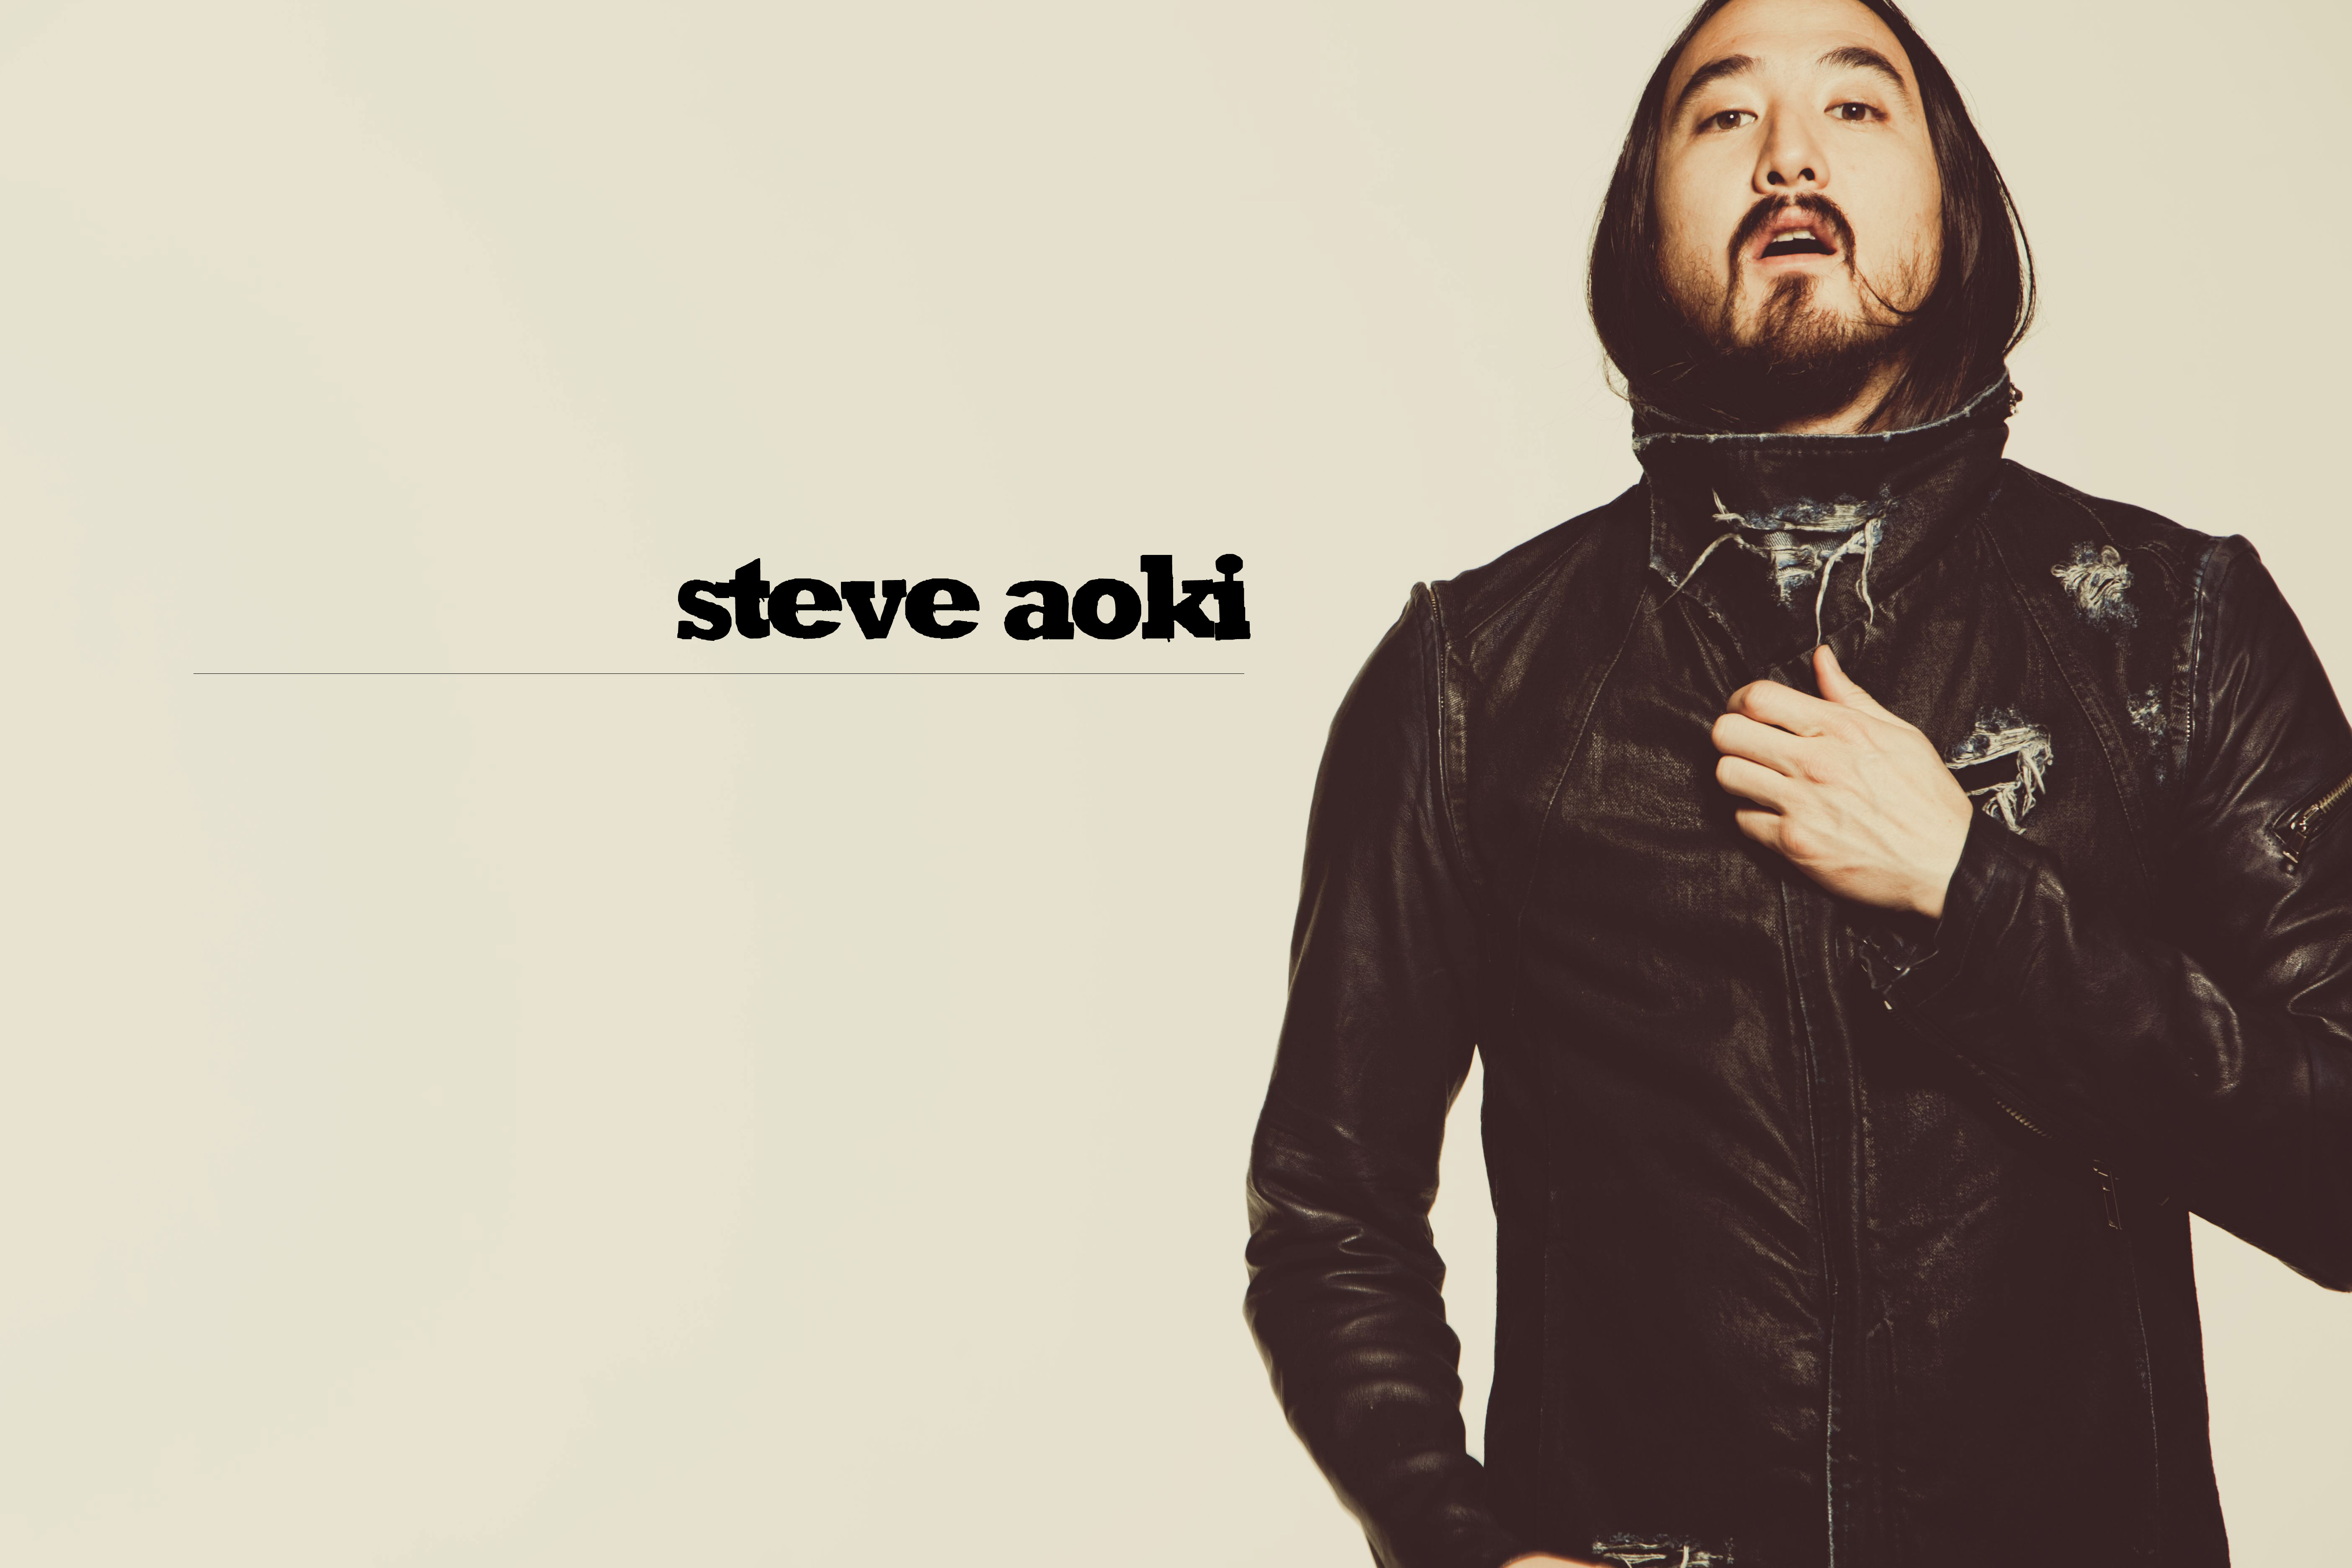 Steve Aoki HD Wallpaper